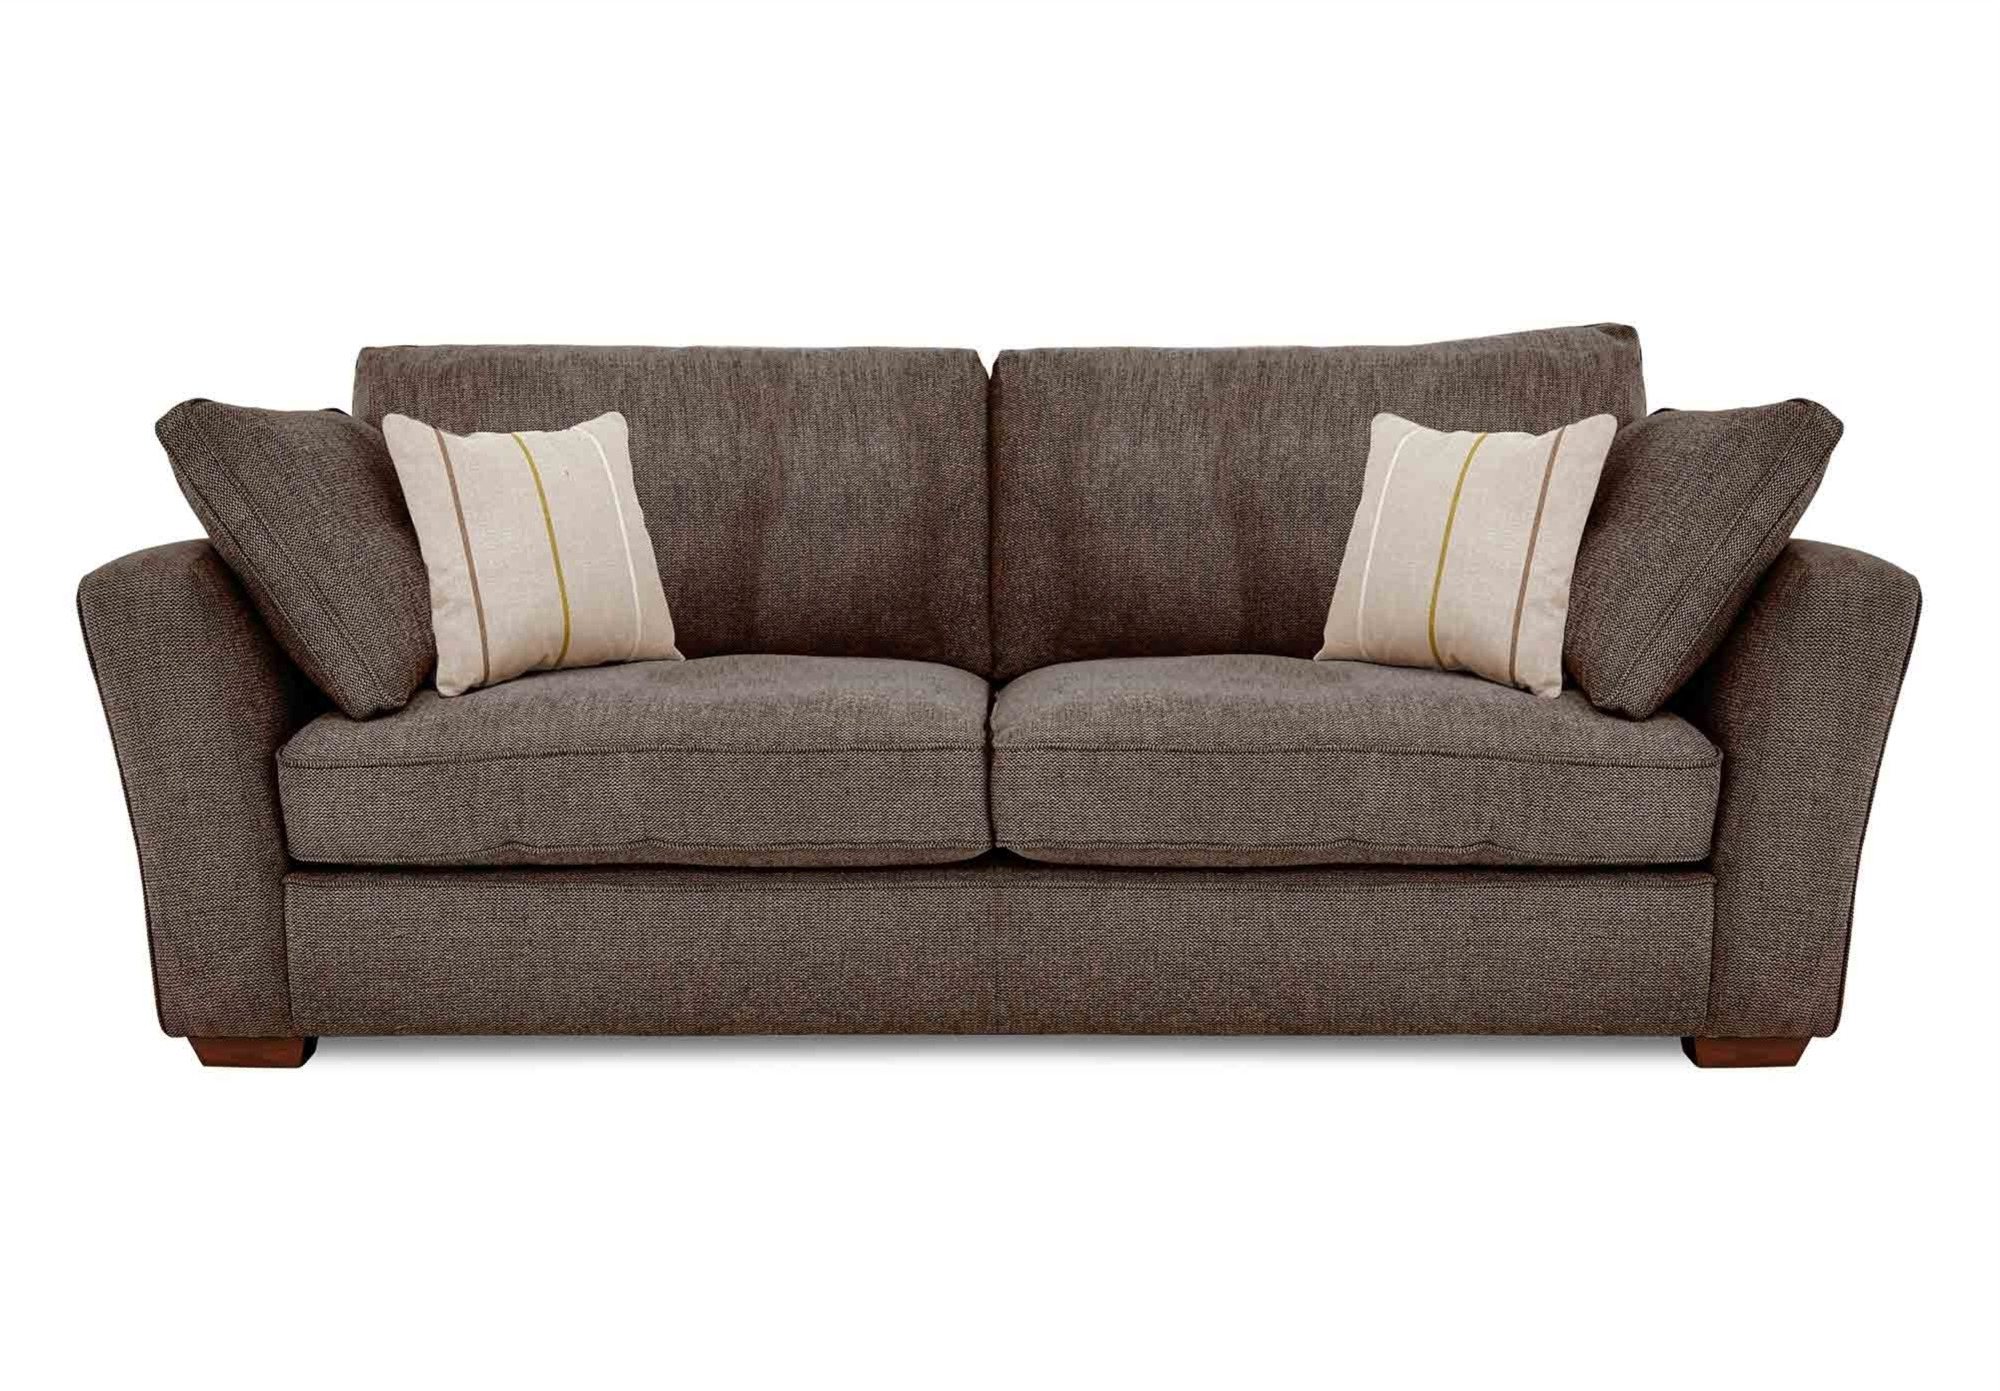 Large 4 Seater Sofas Intended For 2018 4 Seater Sofa – Otto – Gorgeous Living Room Furniture From (View 8 of 20)